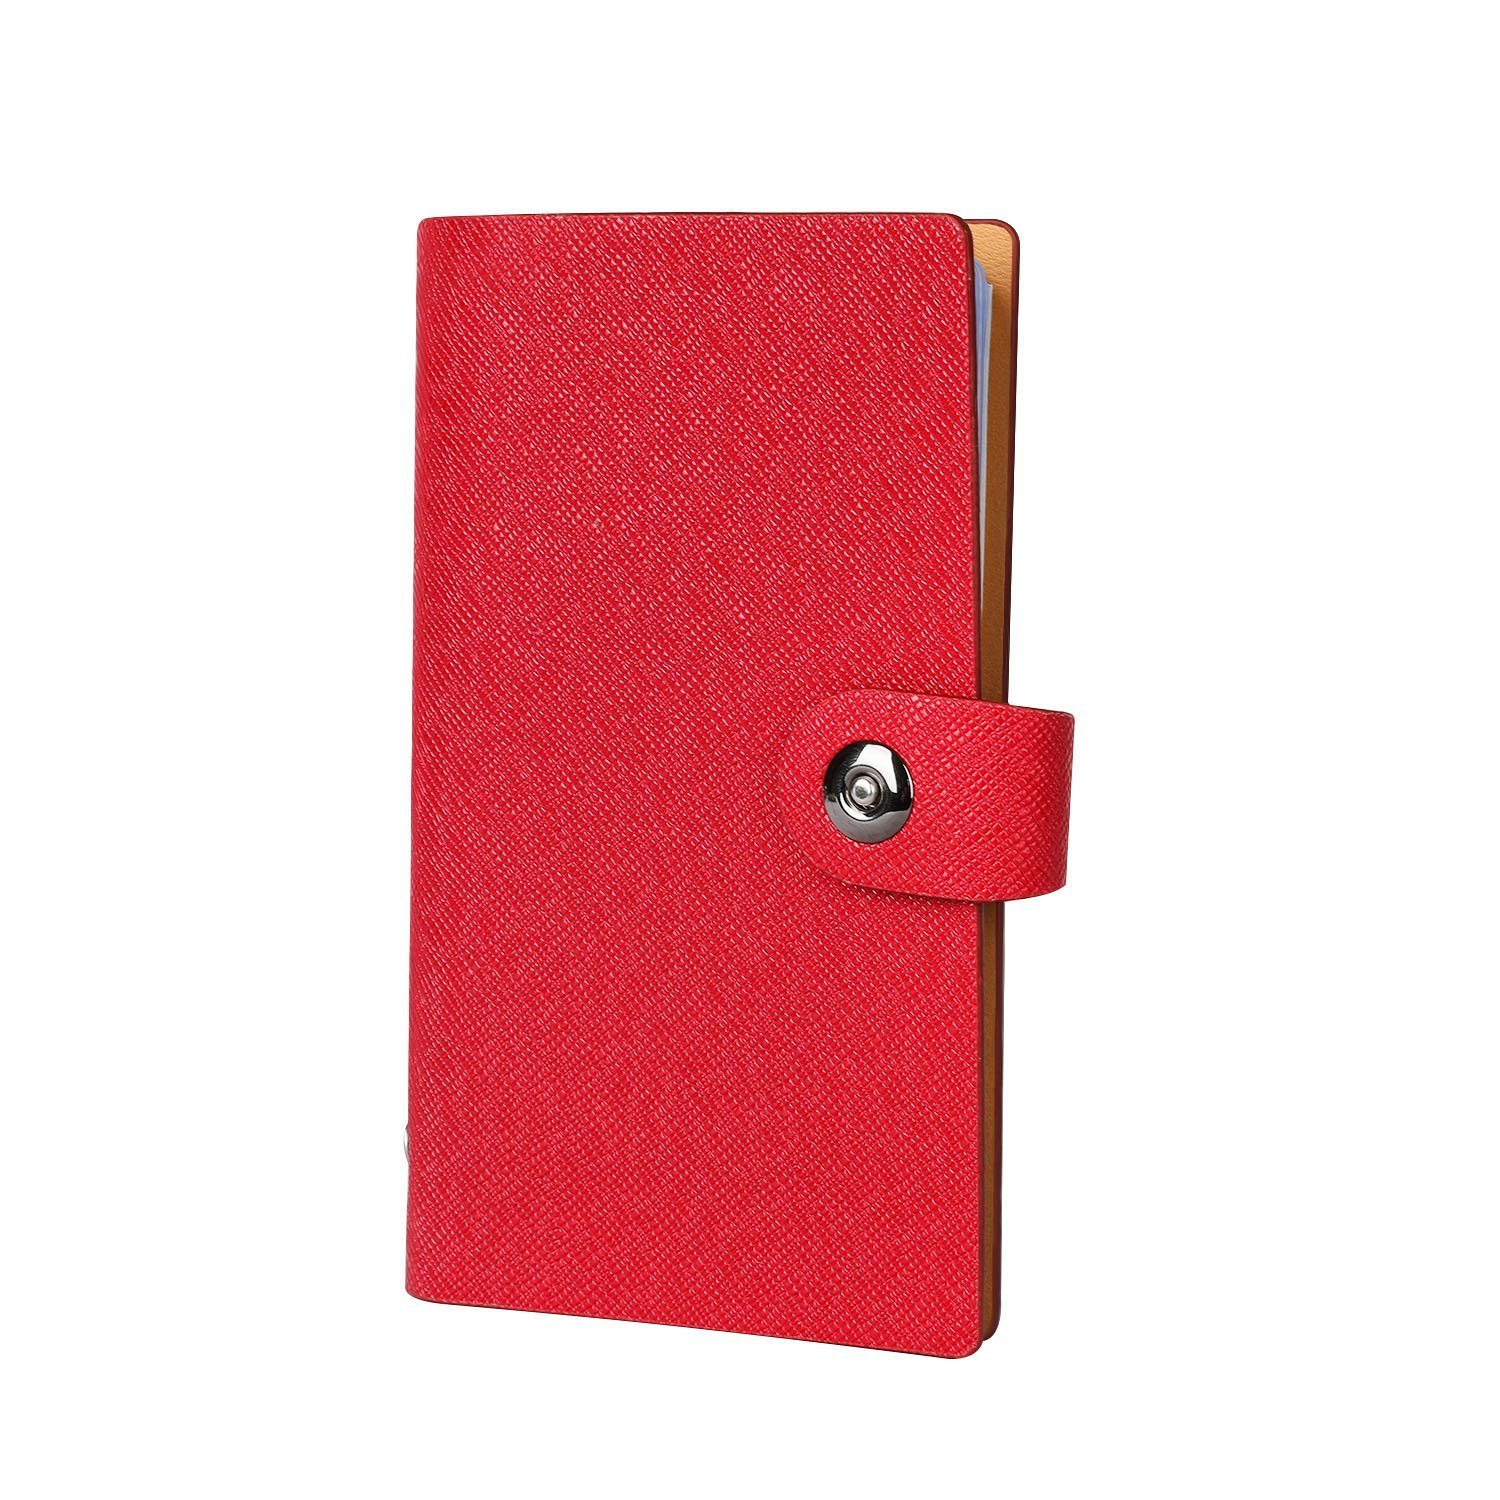 Business Card Holder Album Name Card Book Credit Card Organiser for 300 Cards with Magnet Clasp Leather Cover (Red) Paor